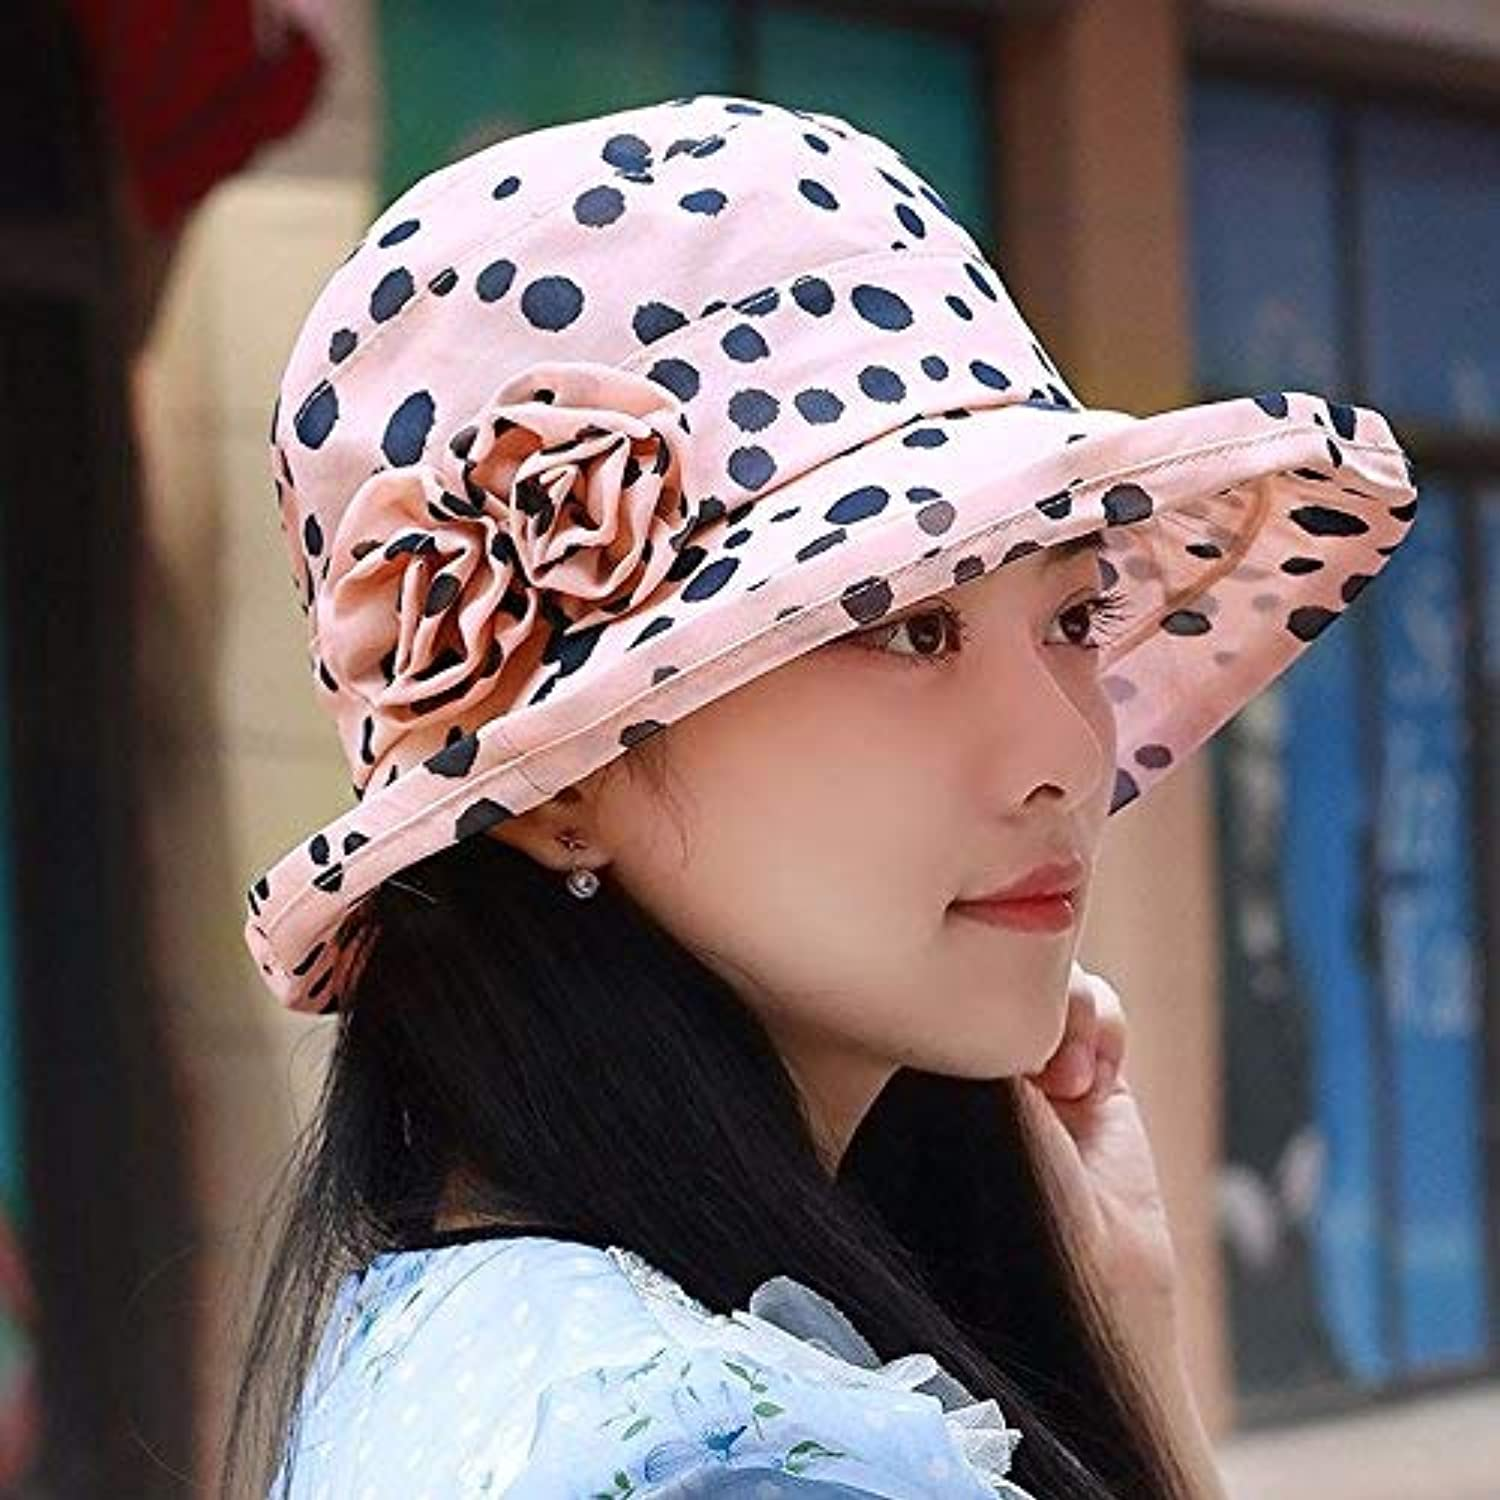 Chuiqingnet Hat female Summer Snow spinning cap over the cold cap hats basin cap mother cap low, outdoor beach hat